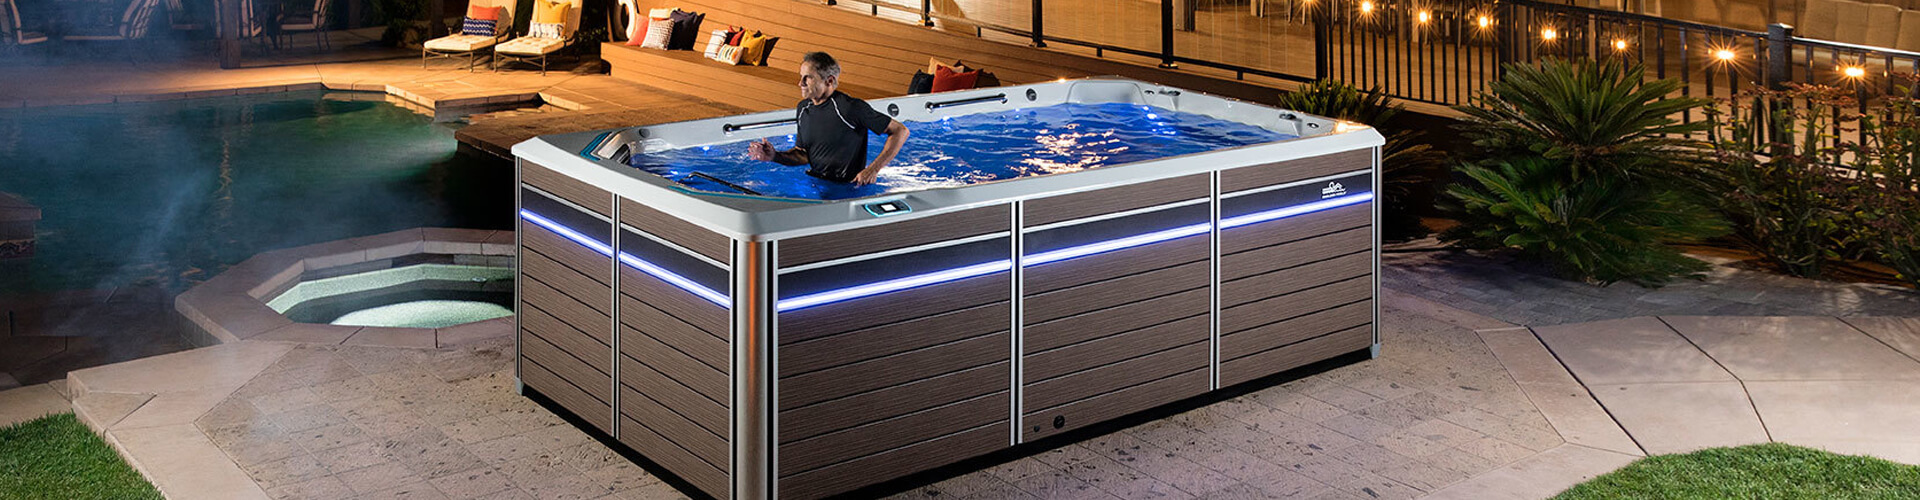 Jacuzzi Endless Pool Underwater Treadmills From Endless Pools Maximum Comfort